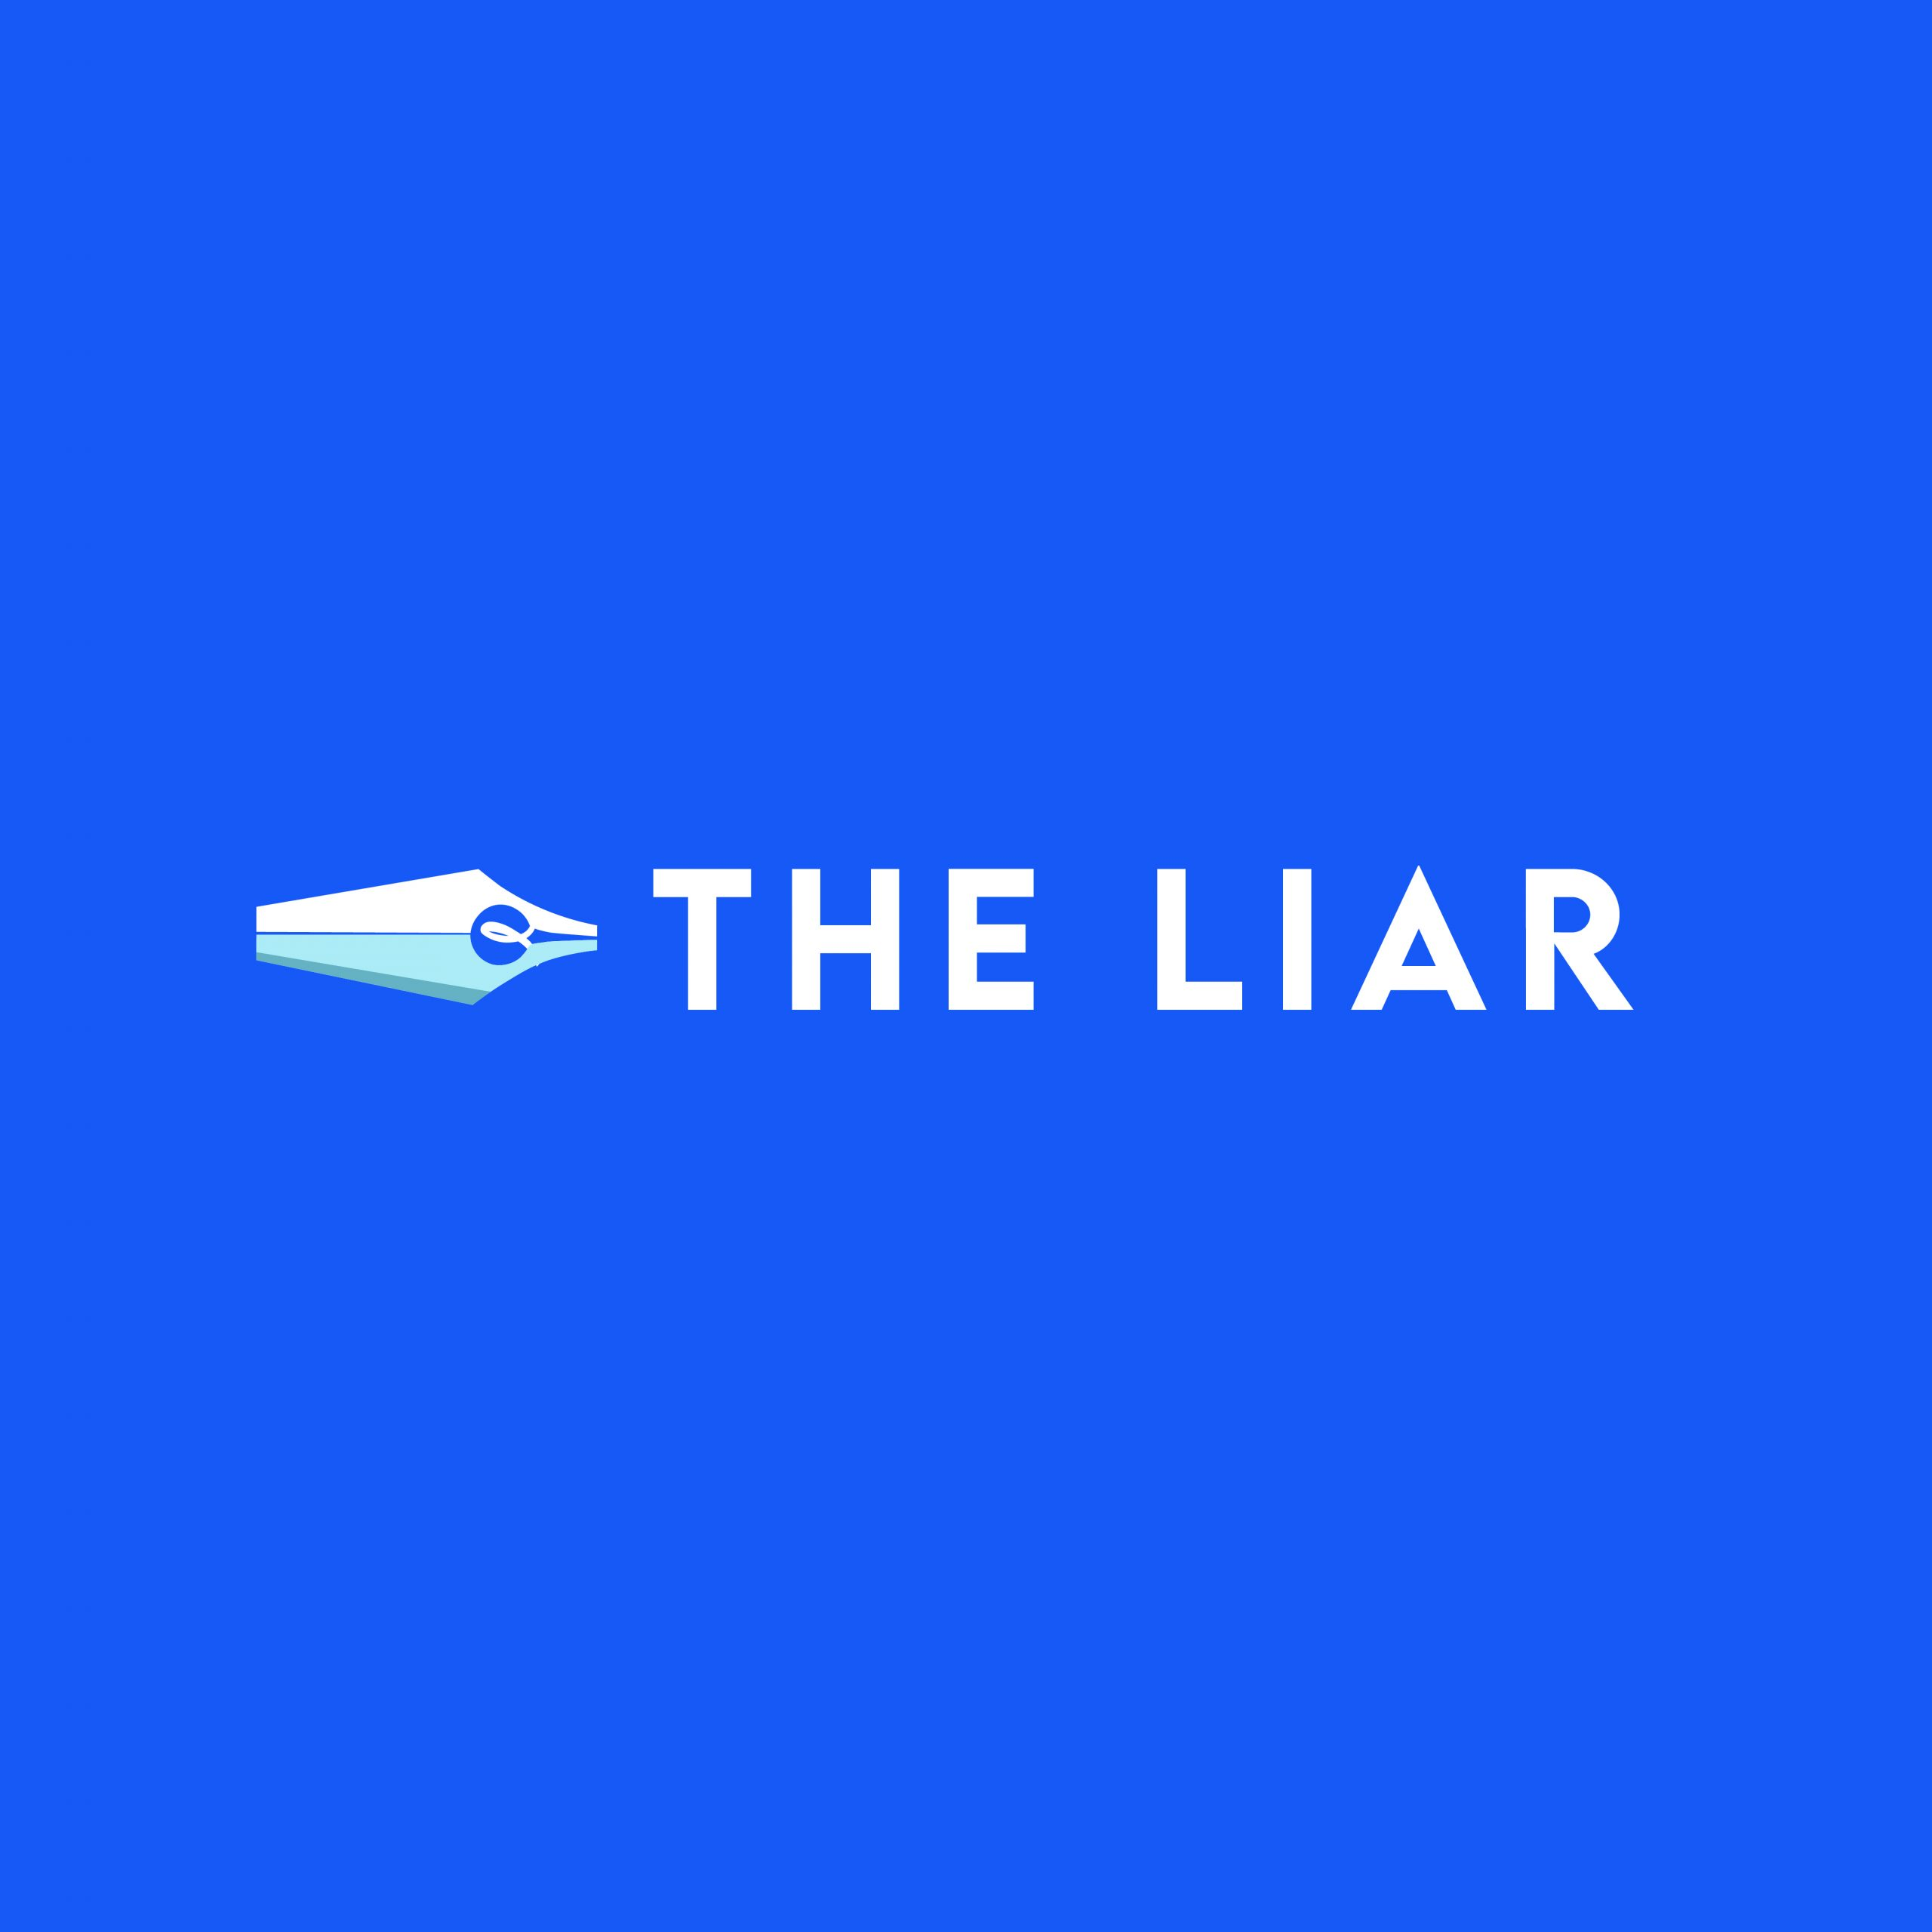 The Liar - Literary Zine